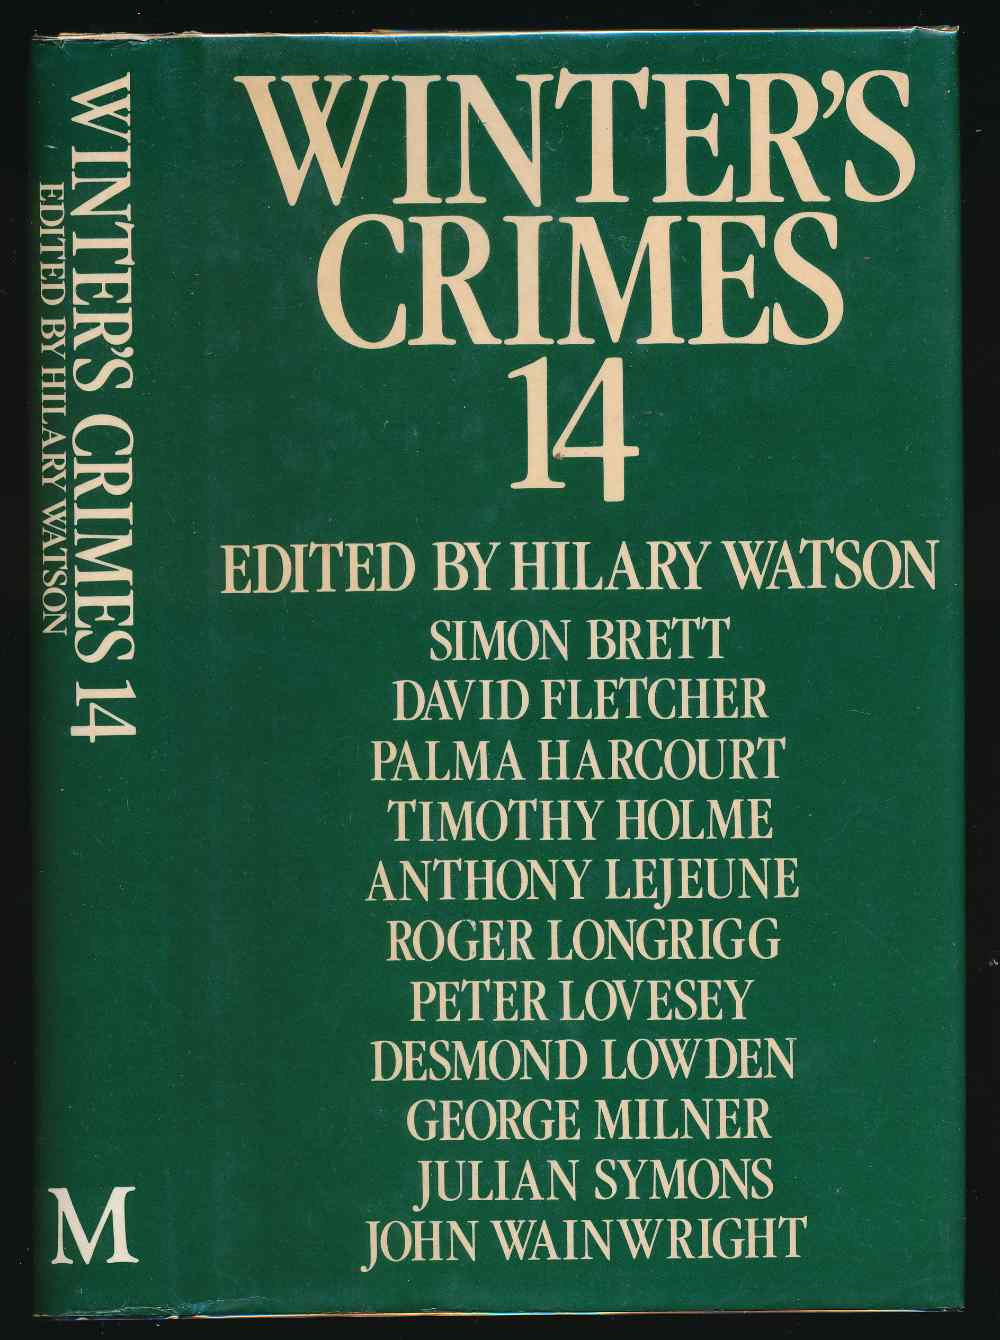 Winter's crimes 14